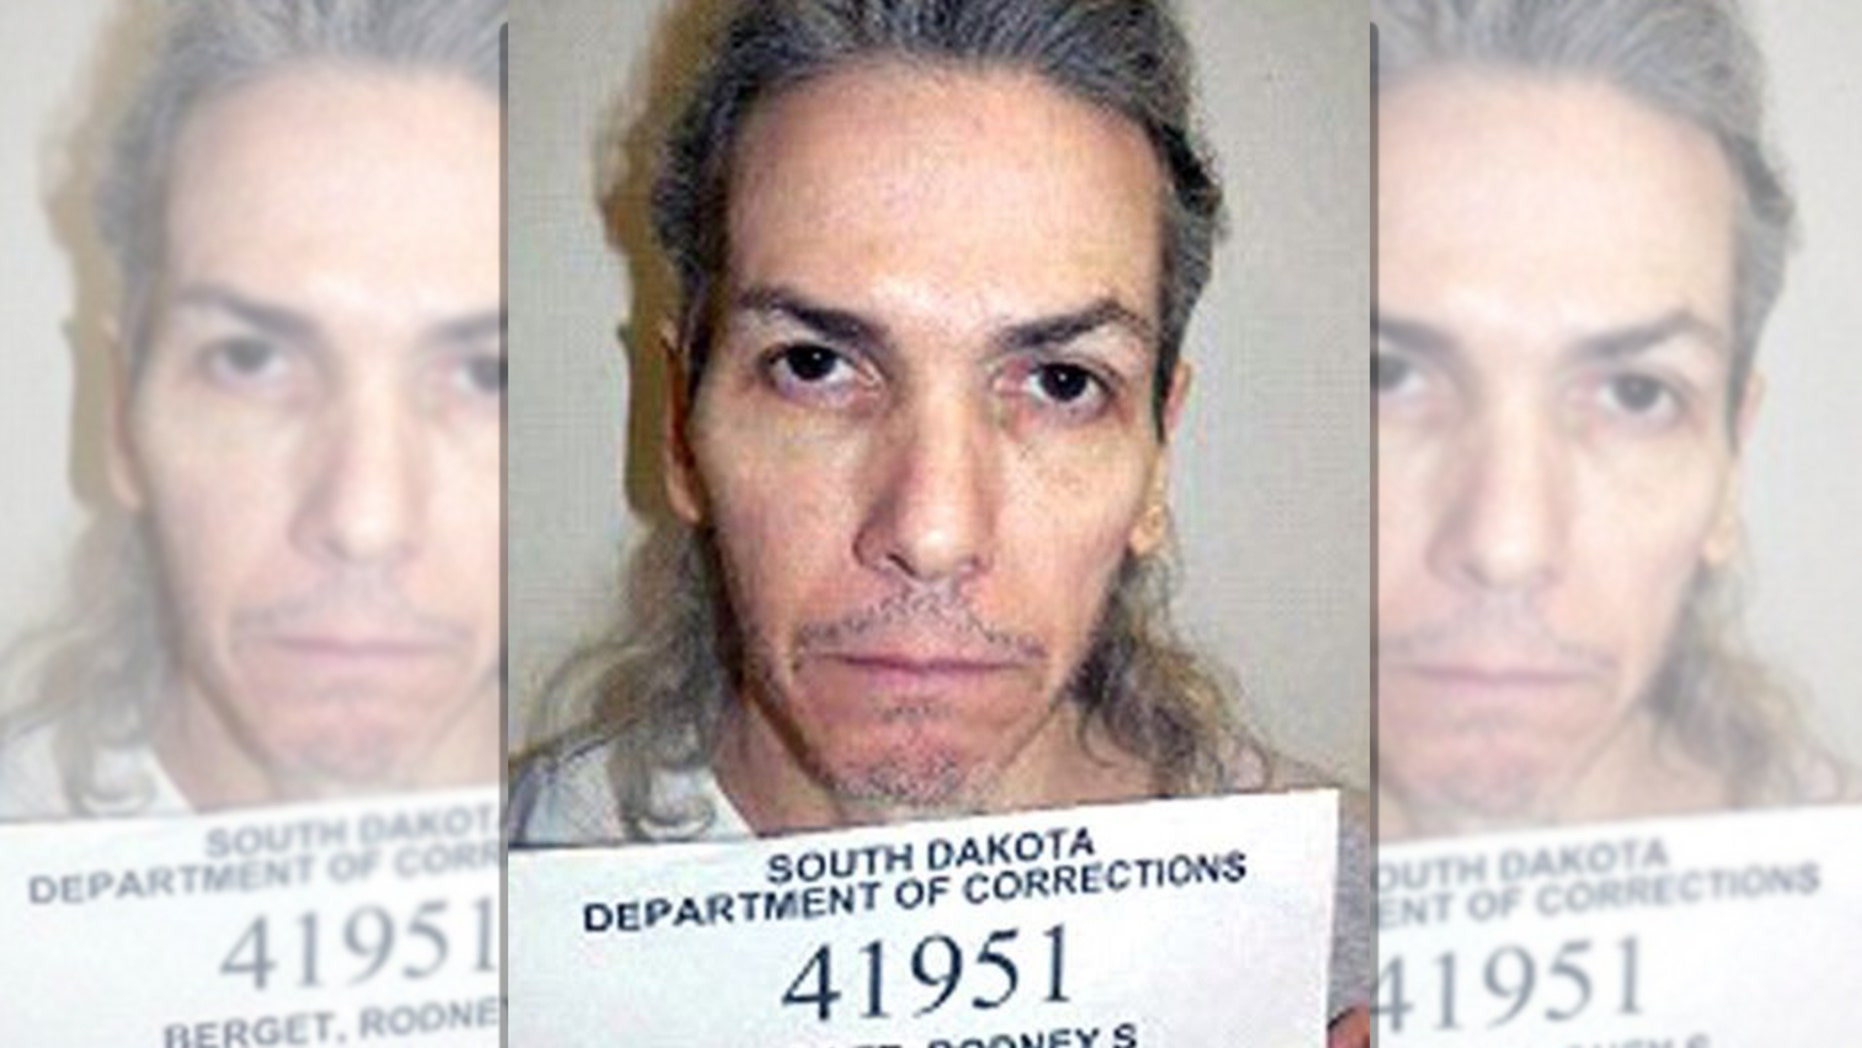 Rodney Berget, 56, was executed Monday night in South Dakota for the 2011 killing of a guard during a failed prison escape attempt.